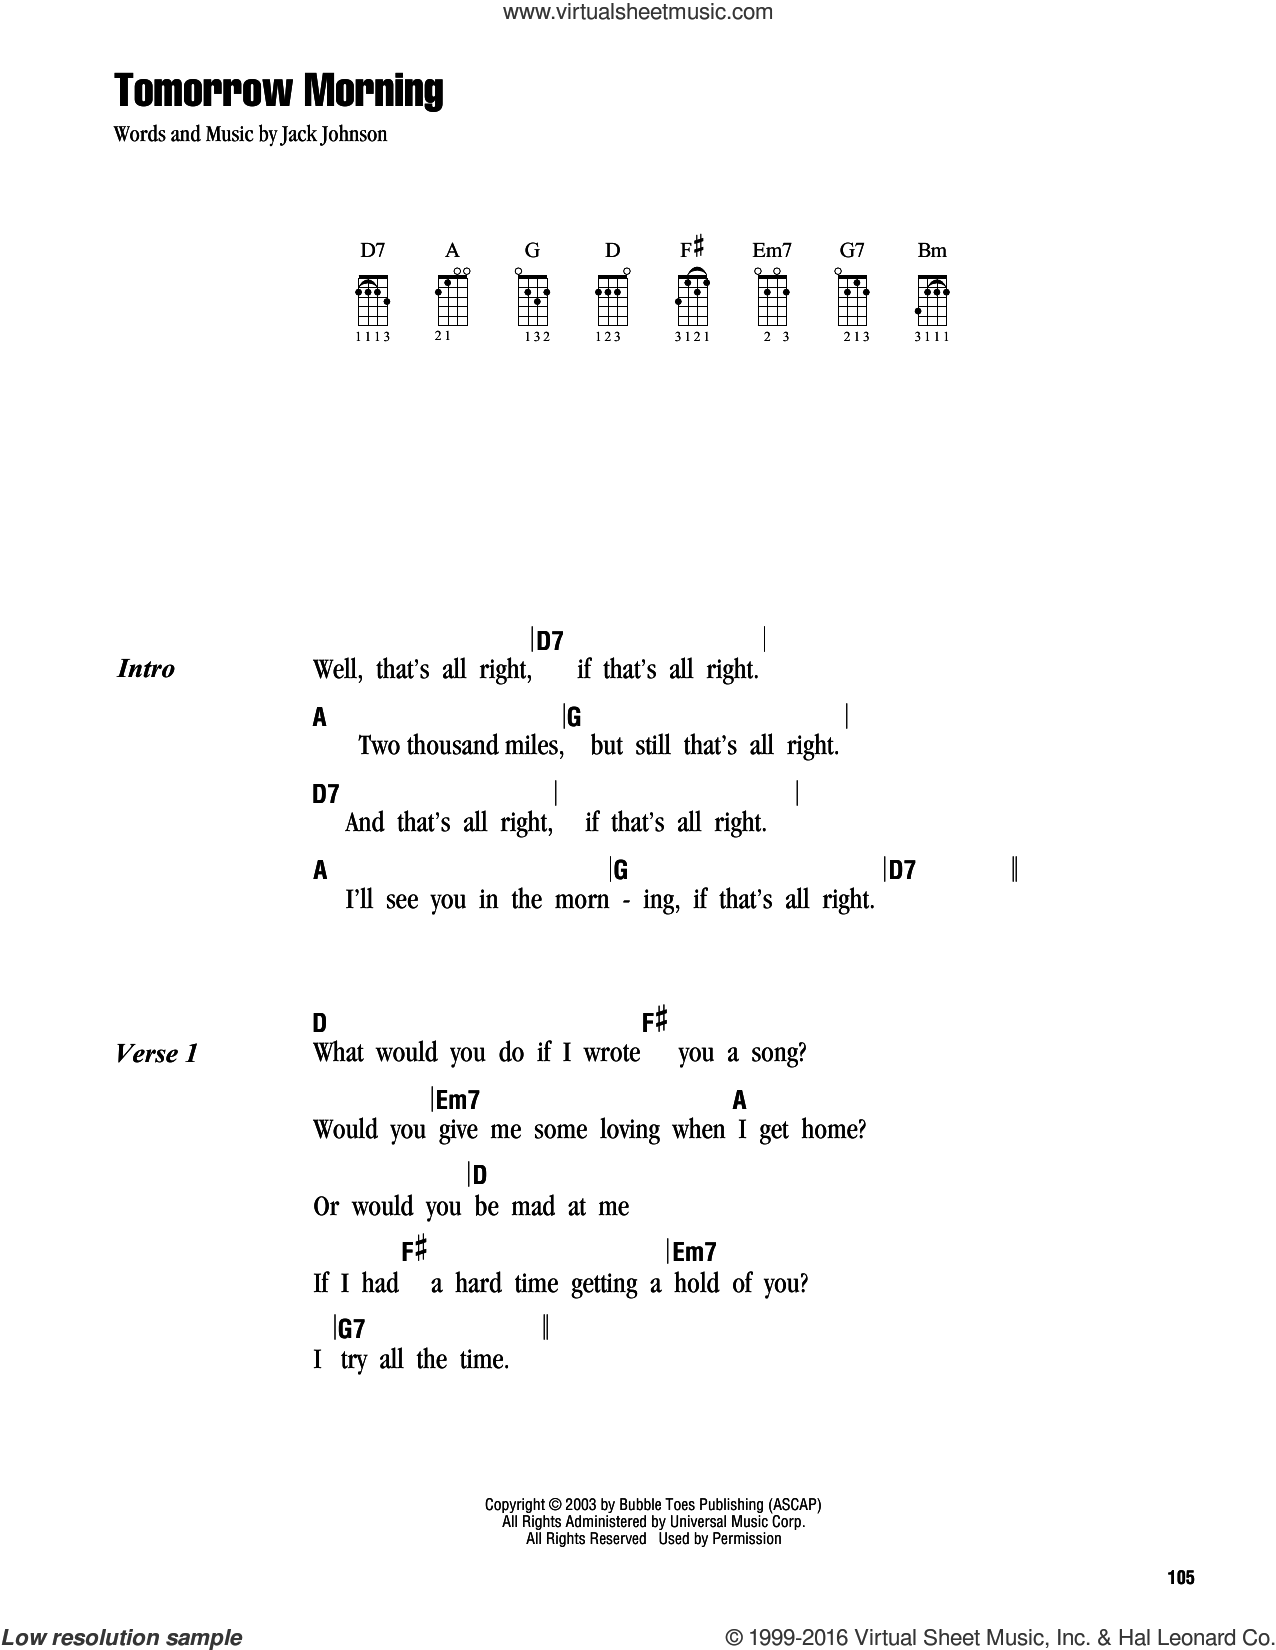 Johnson - Tomorrow Morning sheet music for ukulele (chords) [PDF]